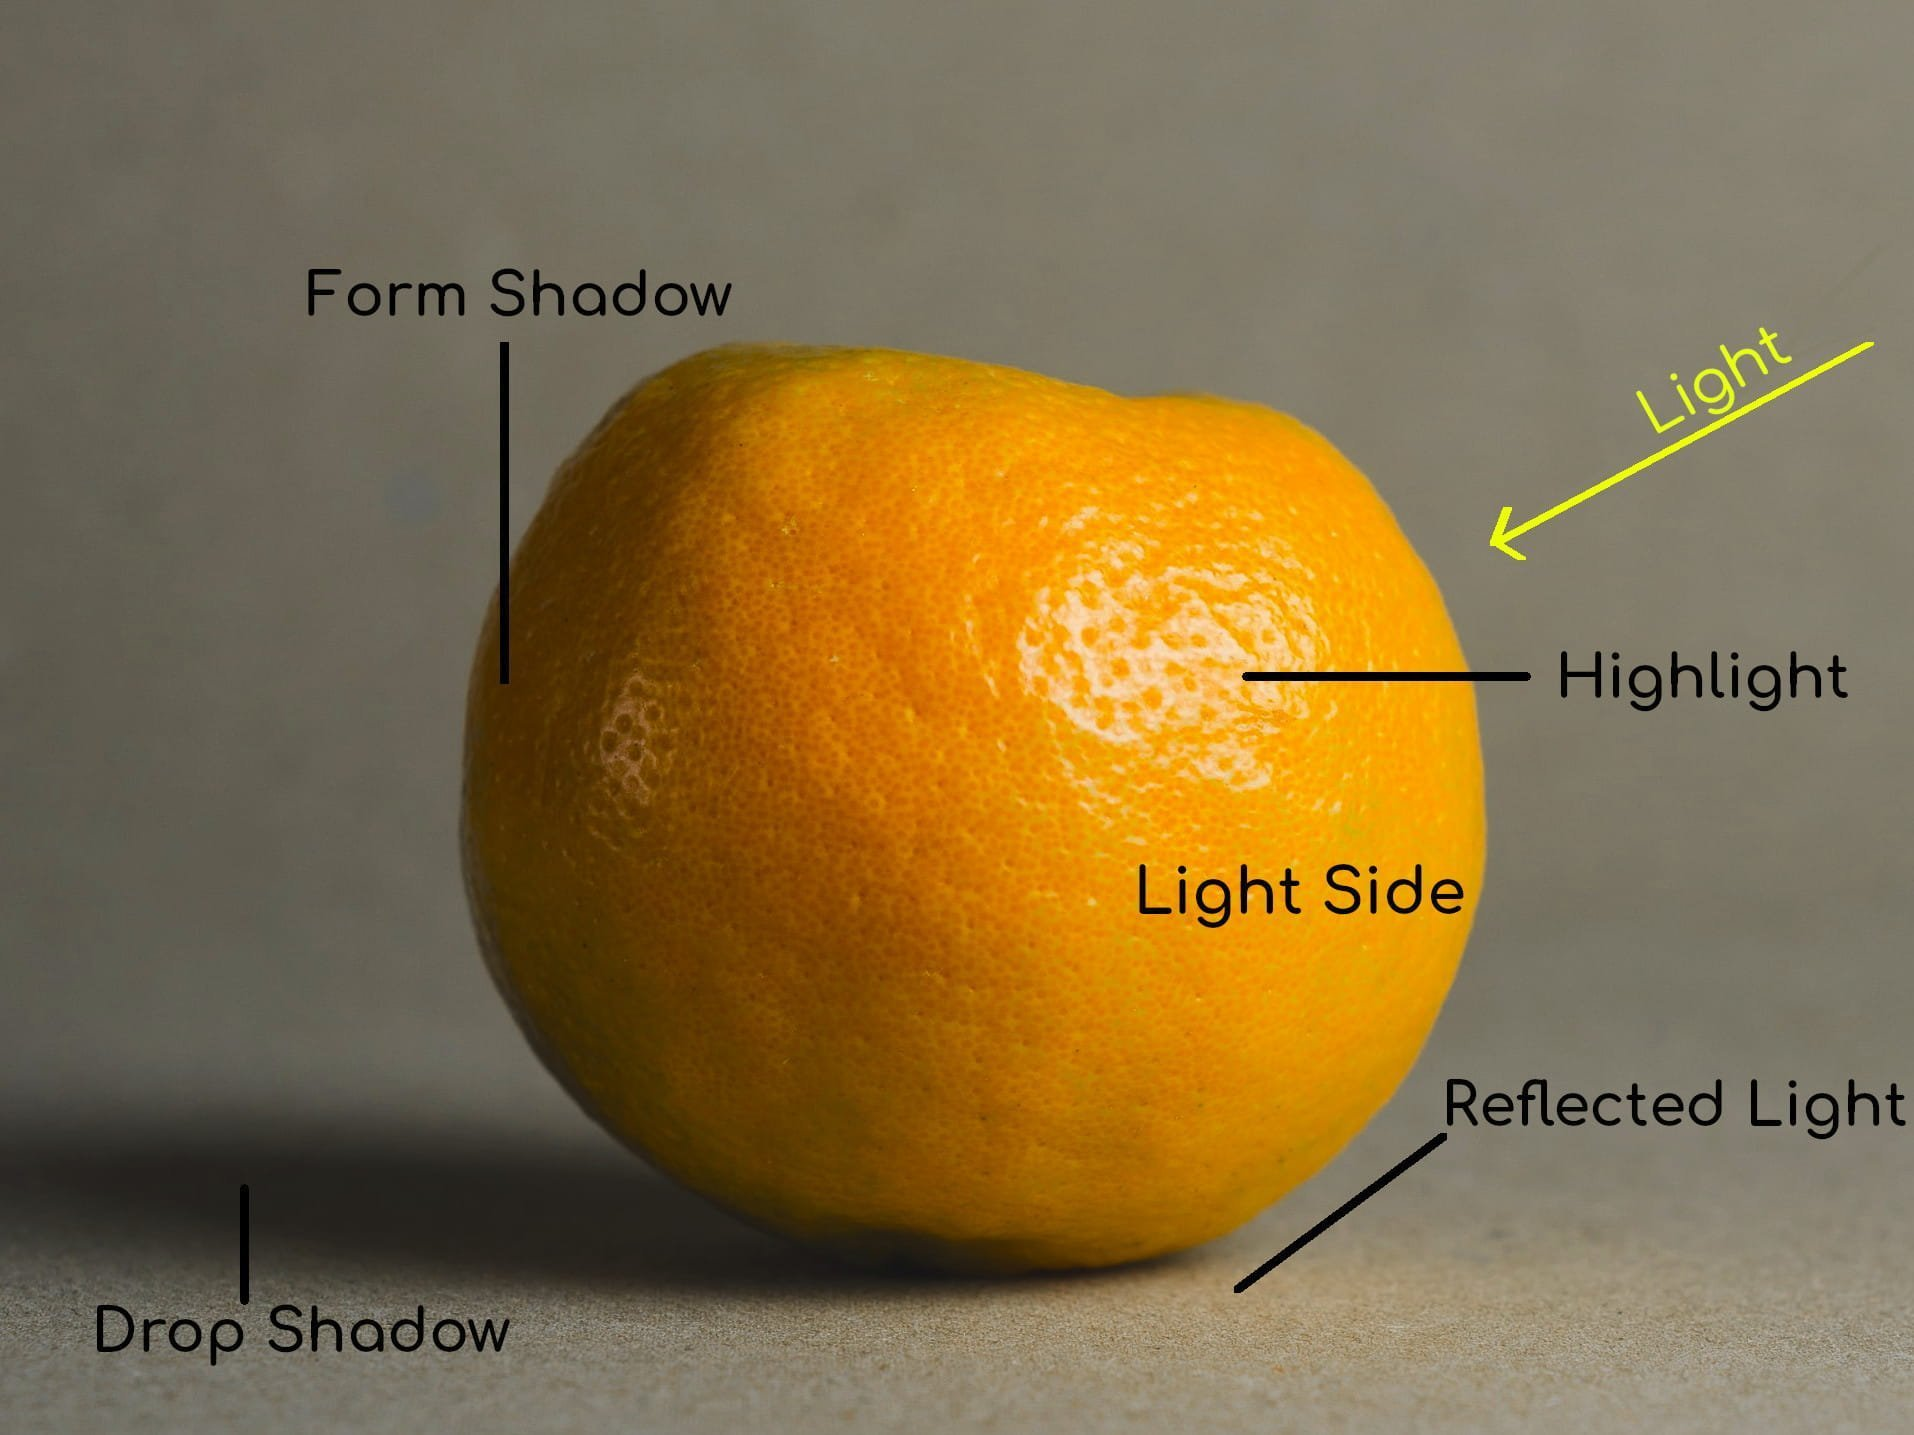 Photo of an orange with light shining on it from the top right. That area is brighter than the left side which is covered in shadow. The ground contains a light reflection of the orange.